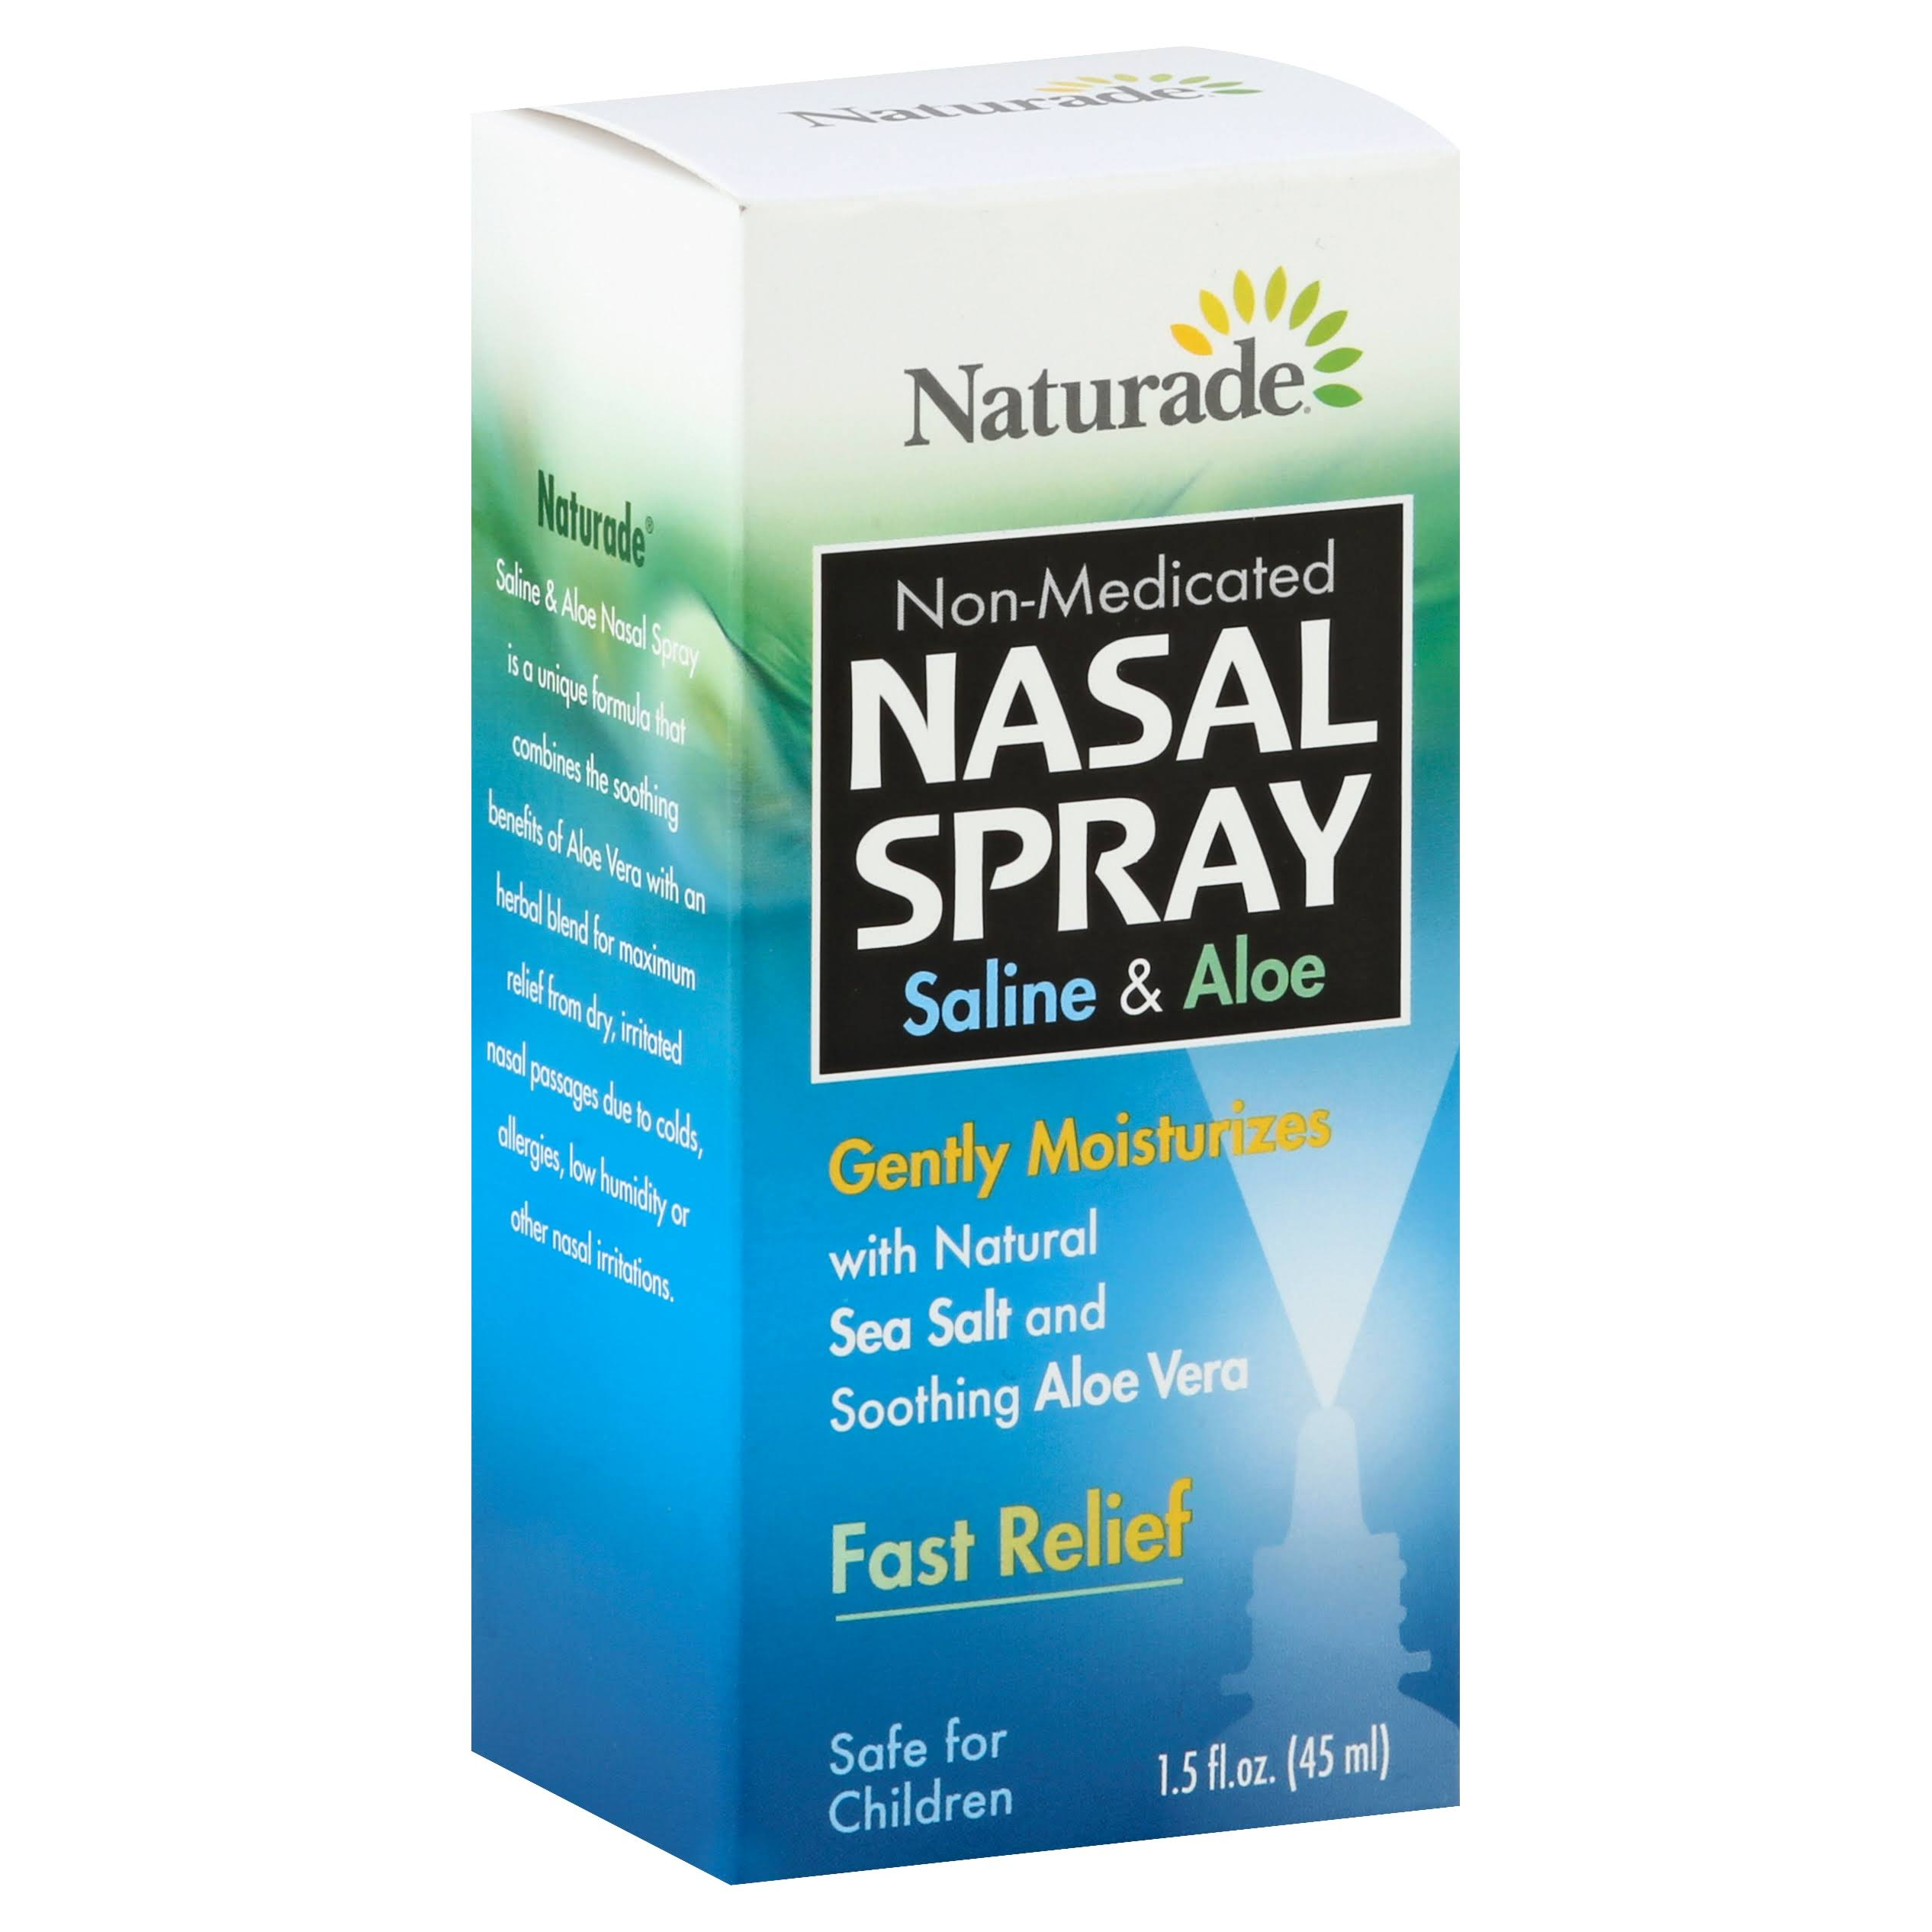 Naturade Saline & Aloe Nasal Spray - 1.5 oz